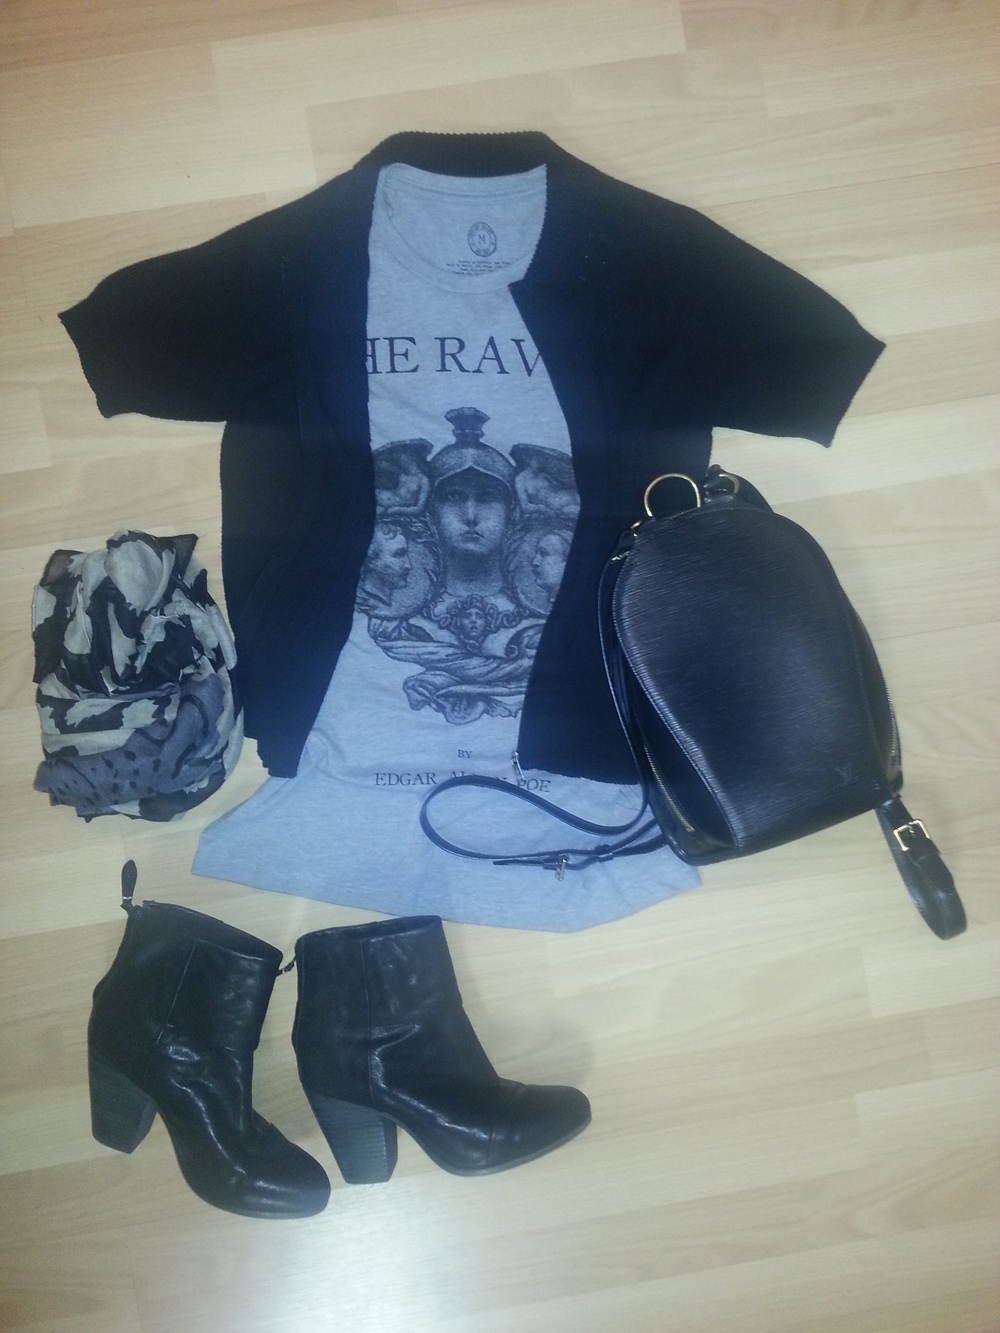 Rag and Bone boots, Out of Print tee The Raven, Louis Vuitton black Epi backpack, black short sleeved cardigan, animal print grey, black, taupe scarf